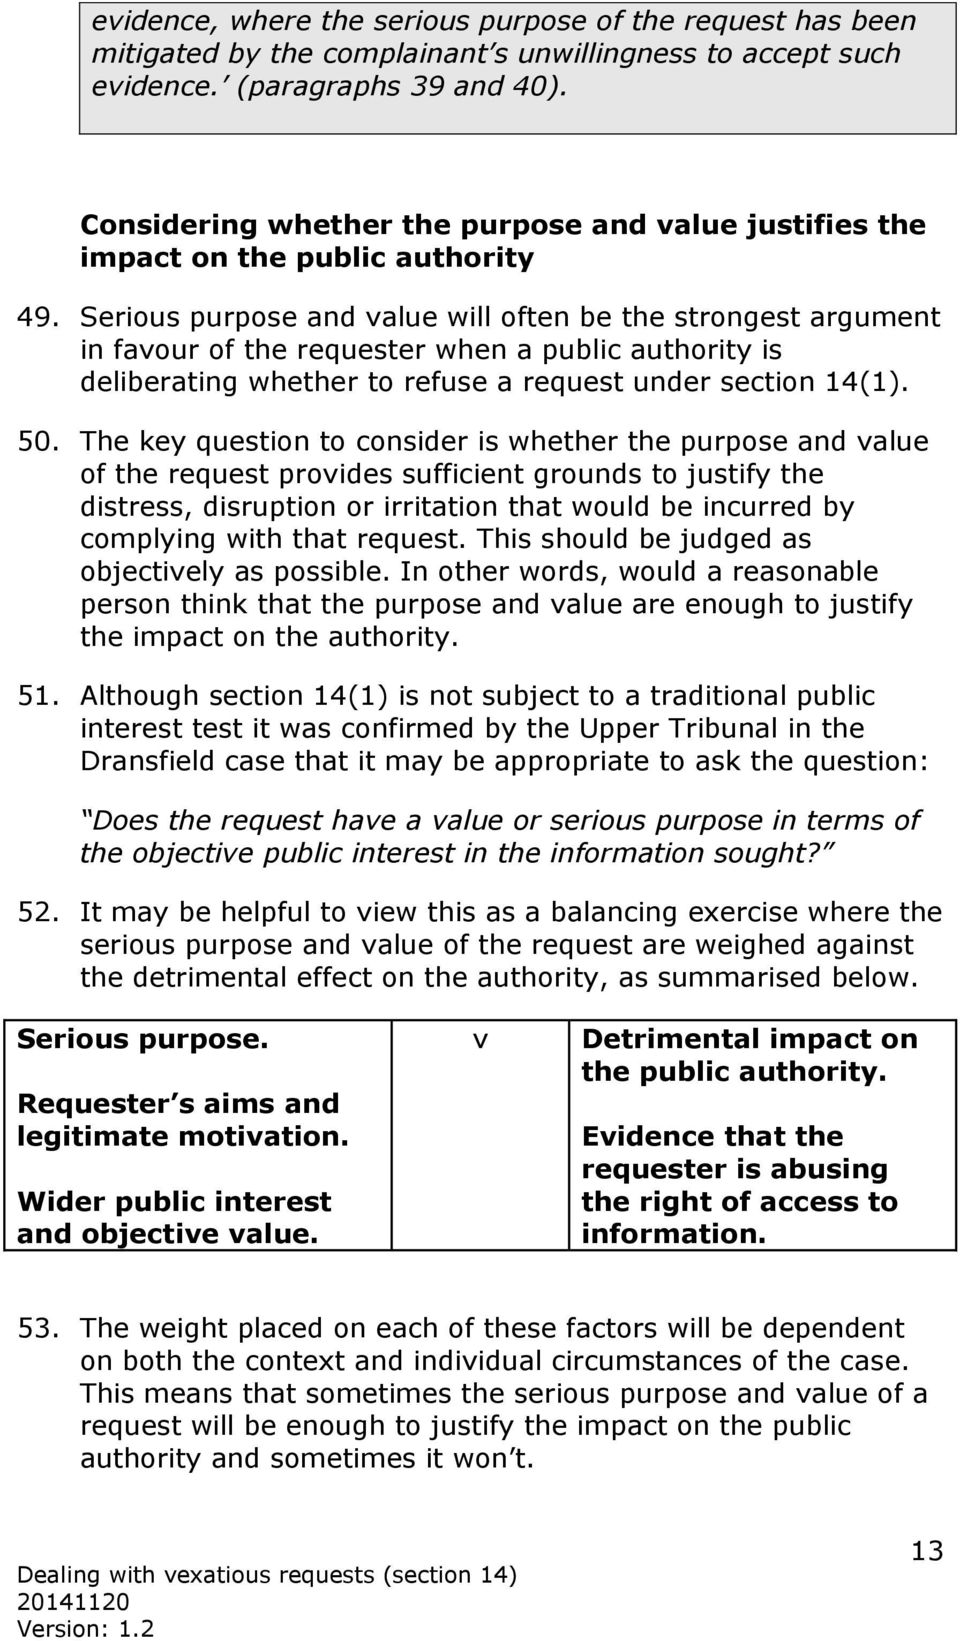 Serious purpose and value will often be the strongest argument in favour of the requester when a public authority is deliberating whether to refuse a request under section 14(1). 50.